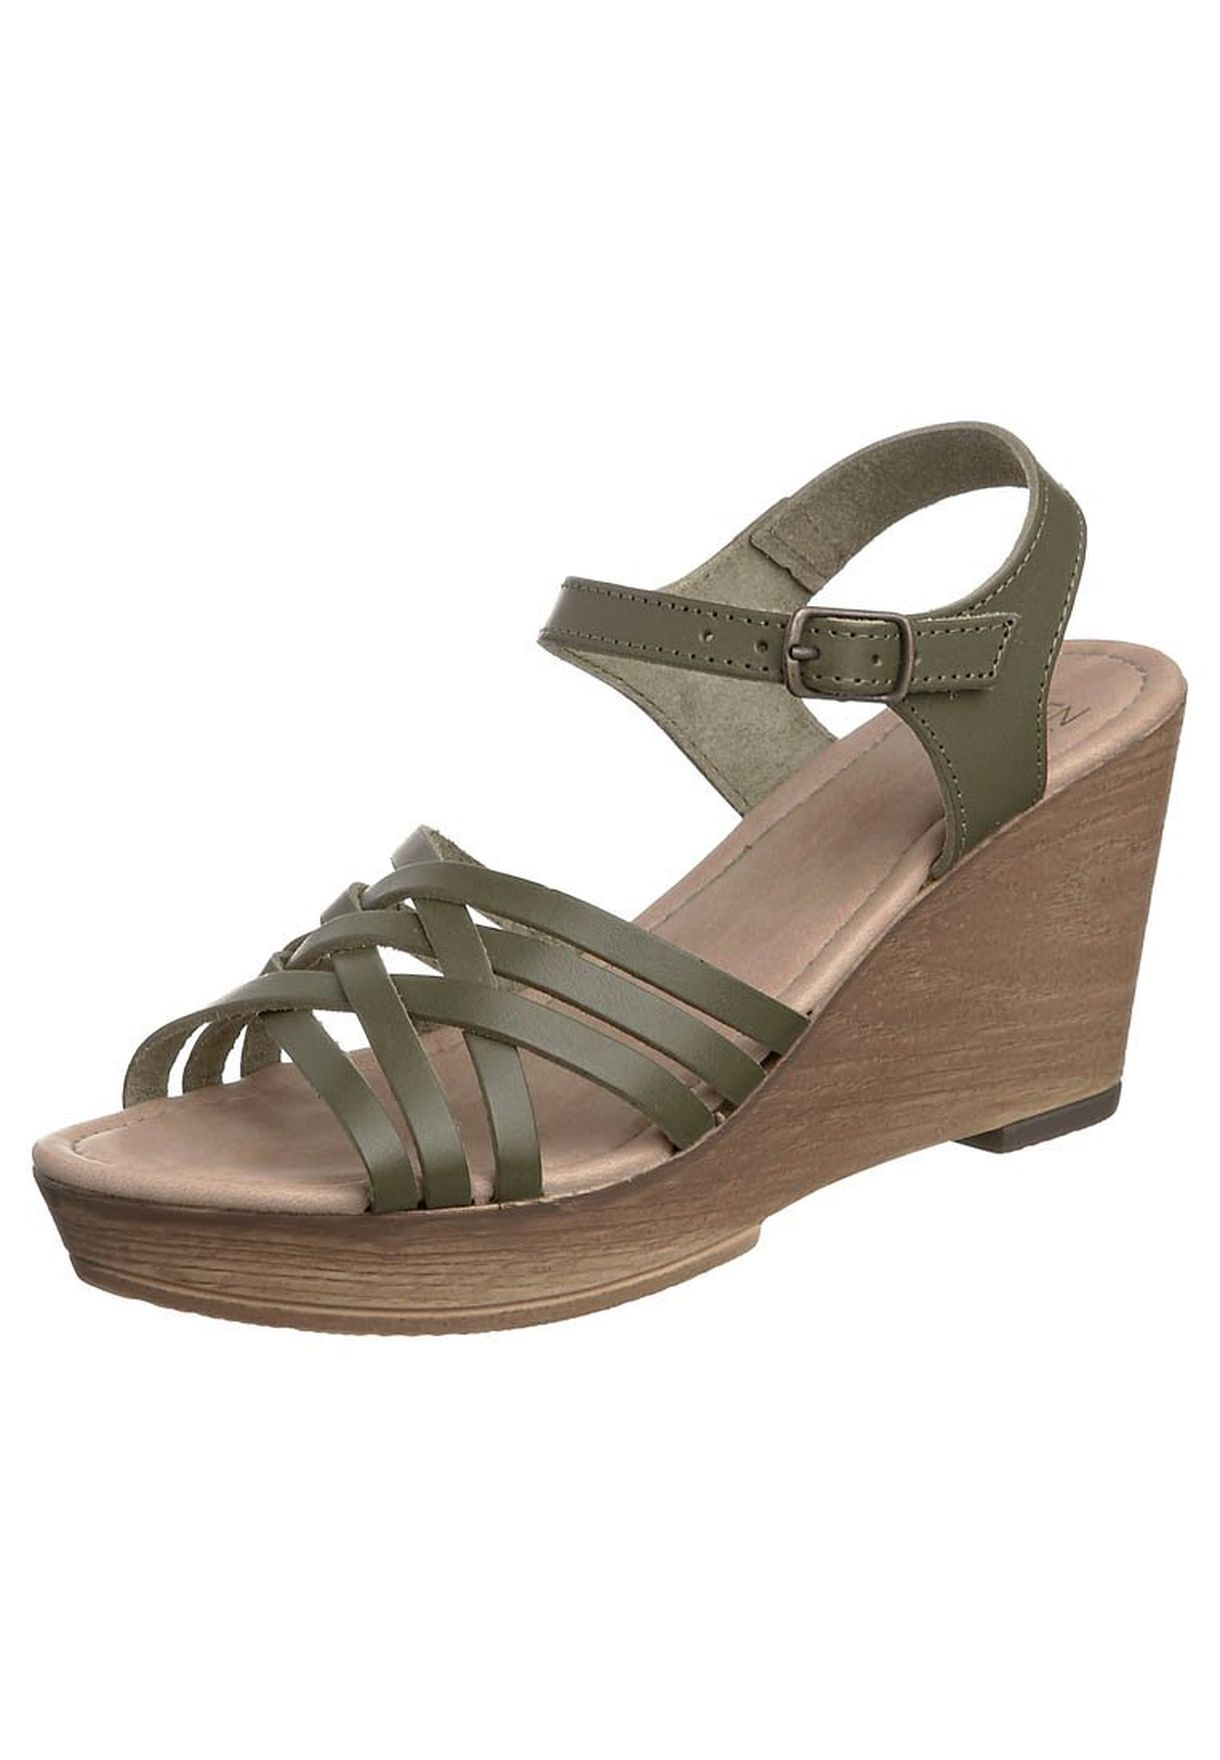 Buy green Wedge Sandals olive for Women